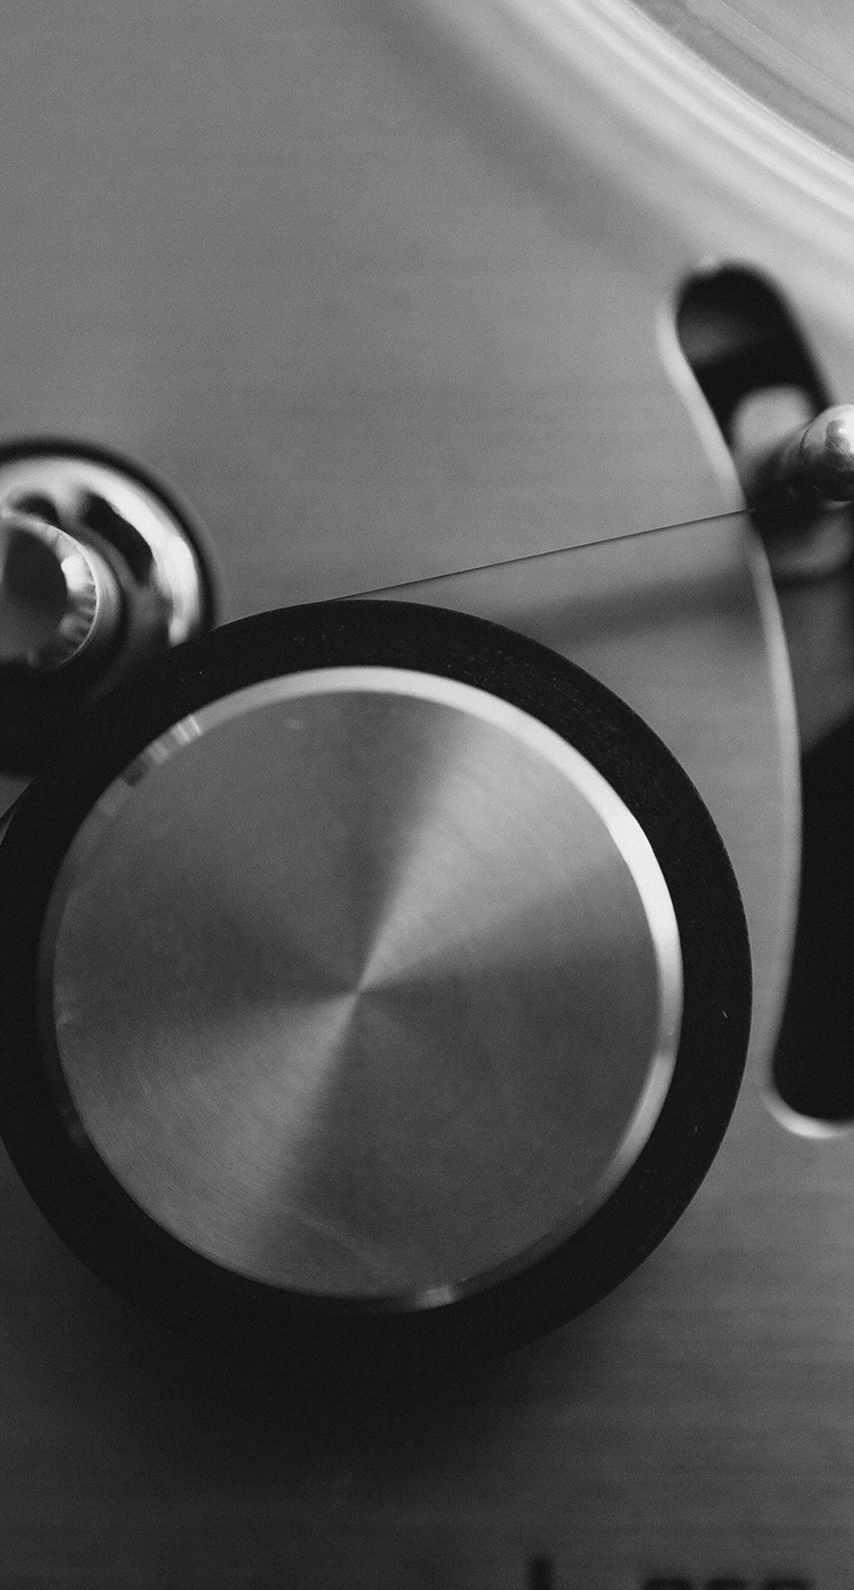 monochrome, sound, bass, equipment, music, still life, shadow, black and white, studio, lens, instrument, zoom, handle, audio, font, product design, still life photography, close up, angle, monochrome photography, audio equipment